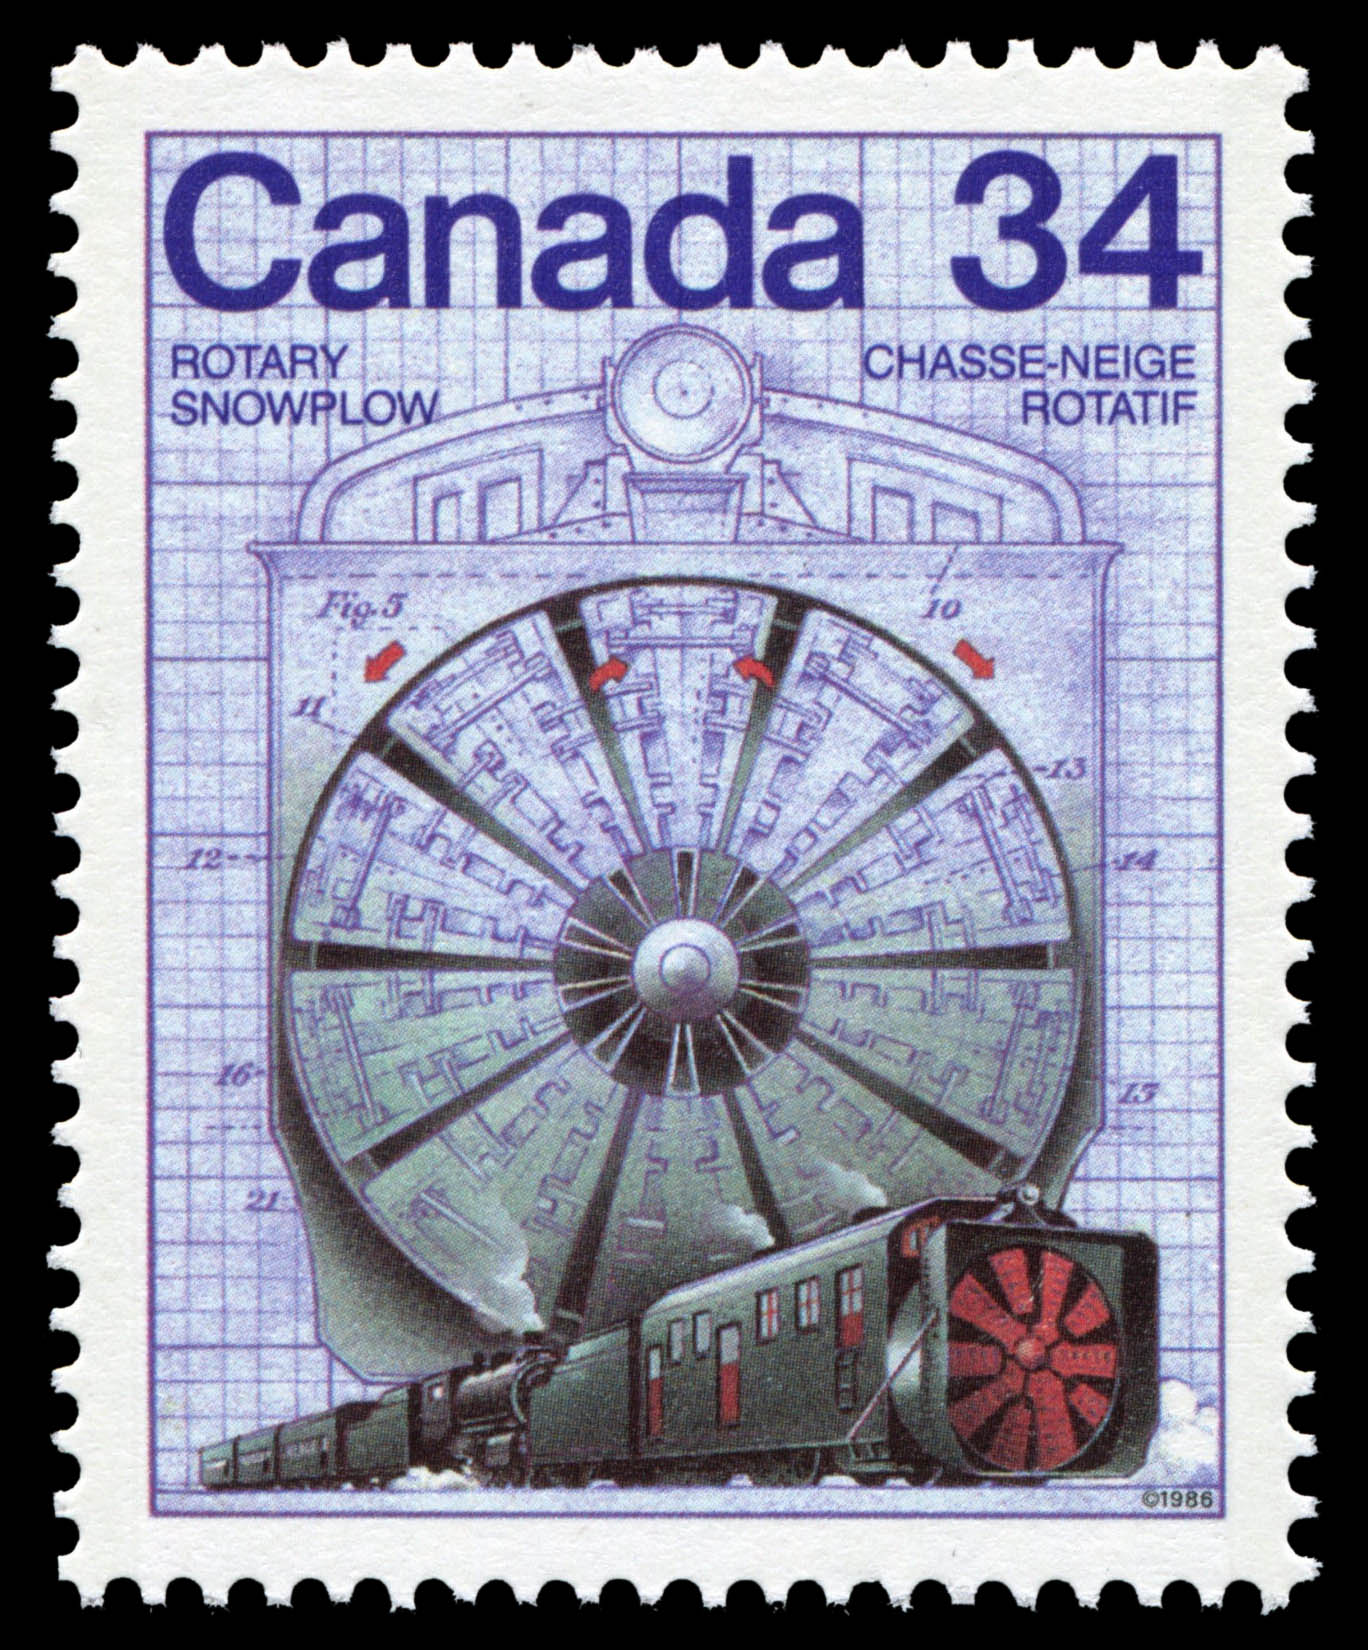 Rotary Snowplow Canada Postage Stamp